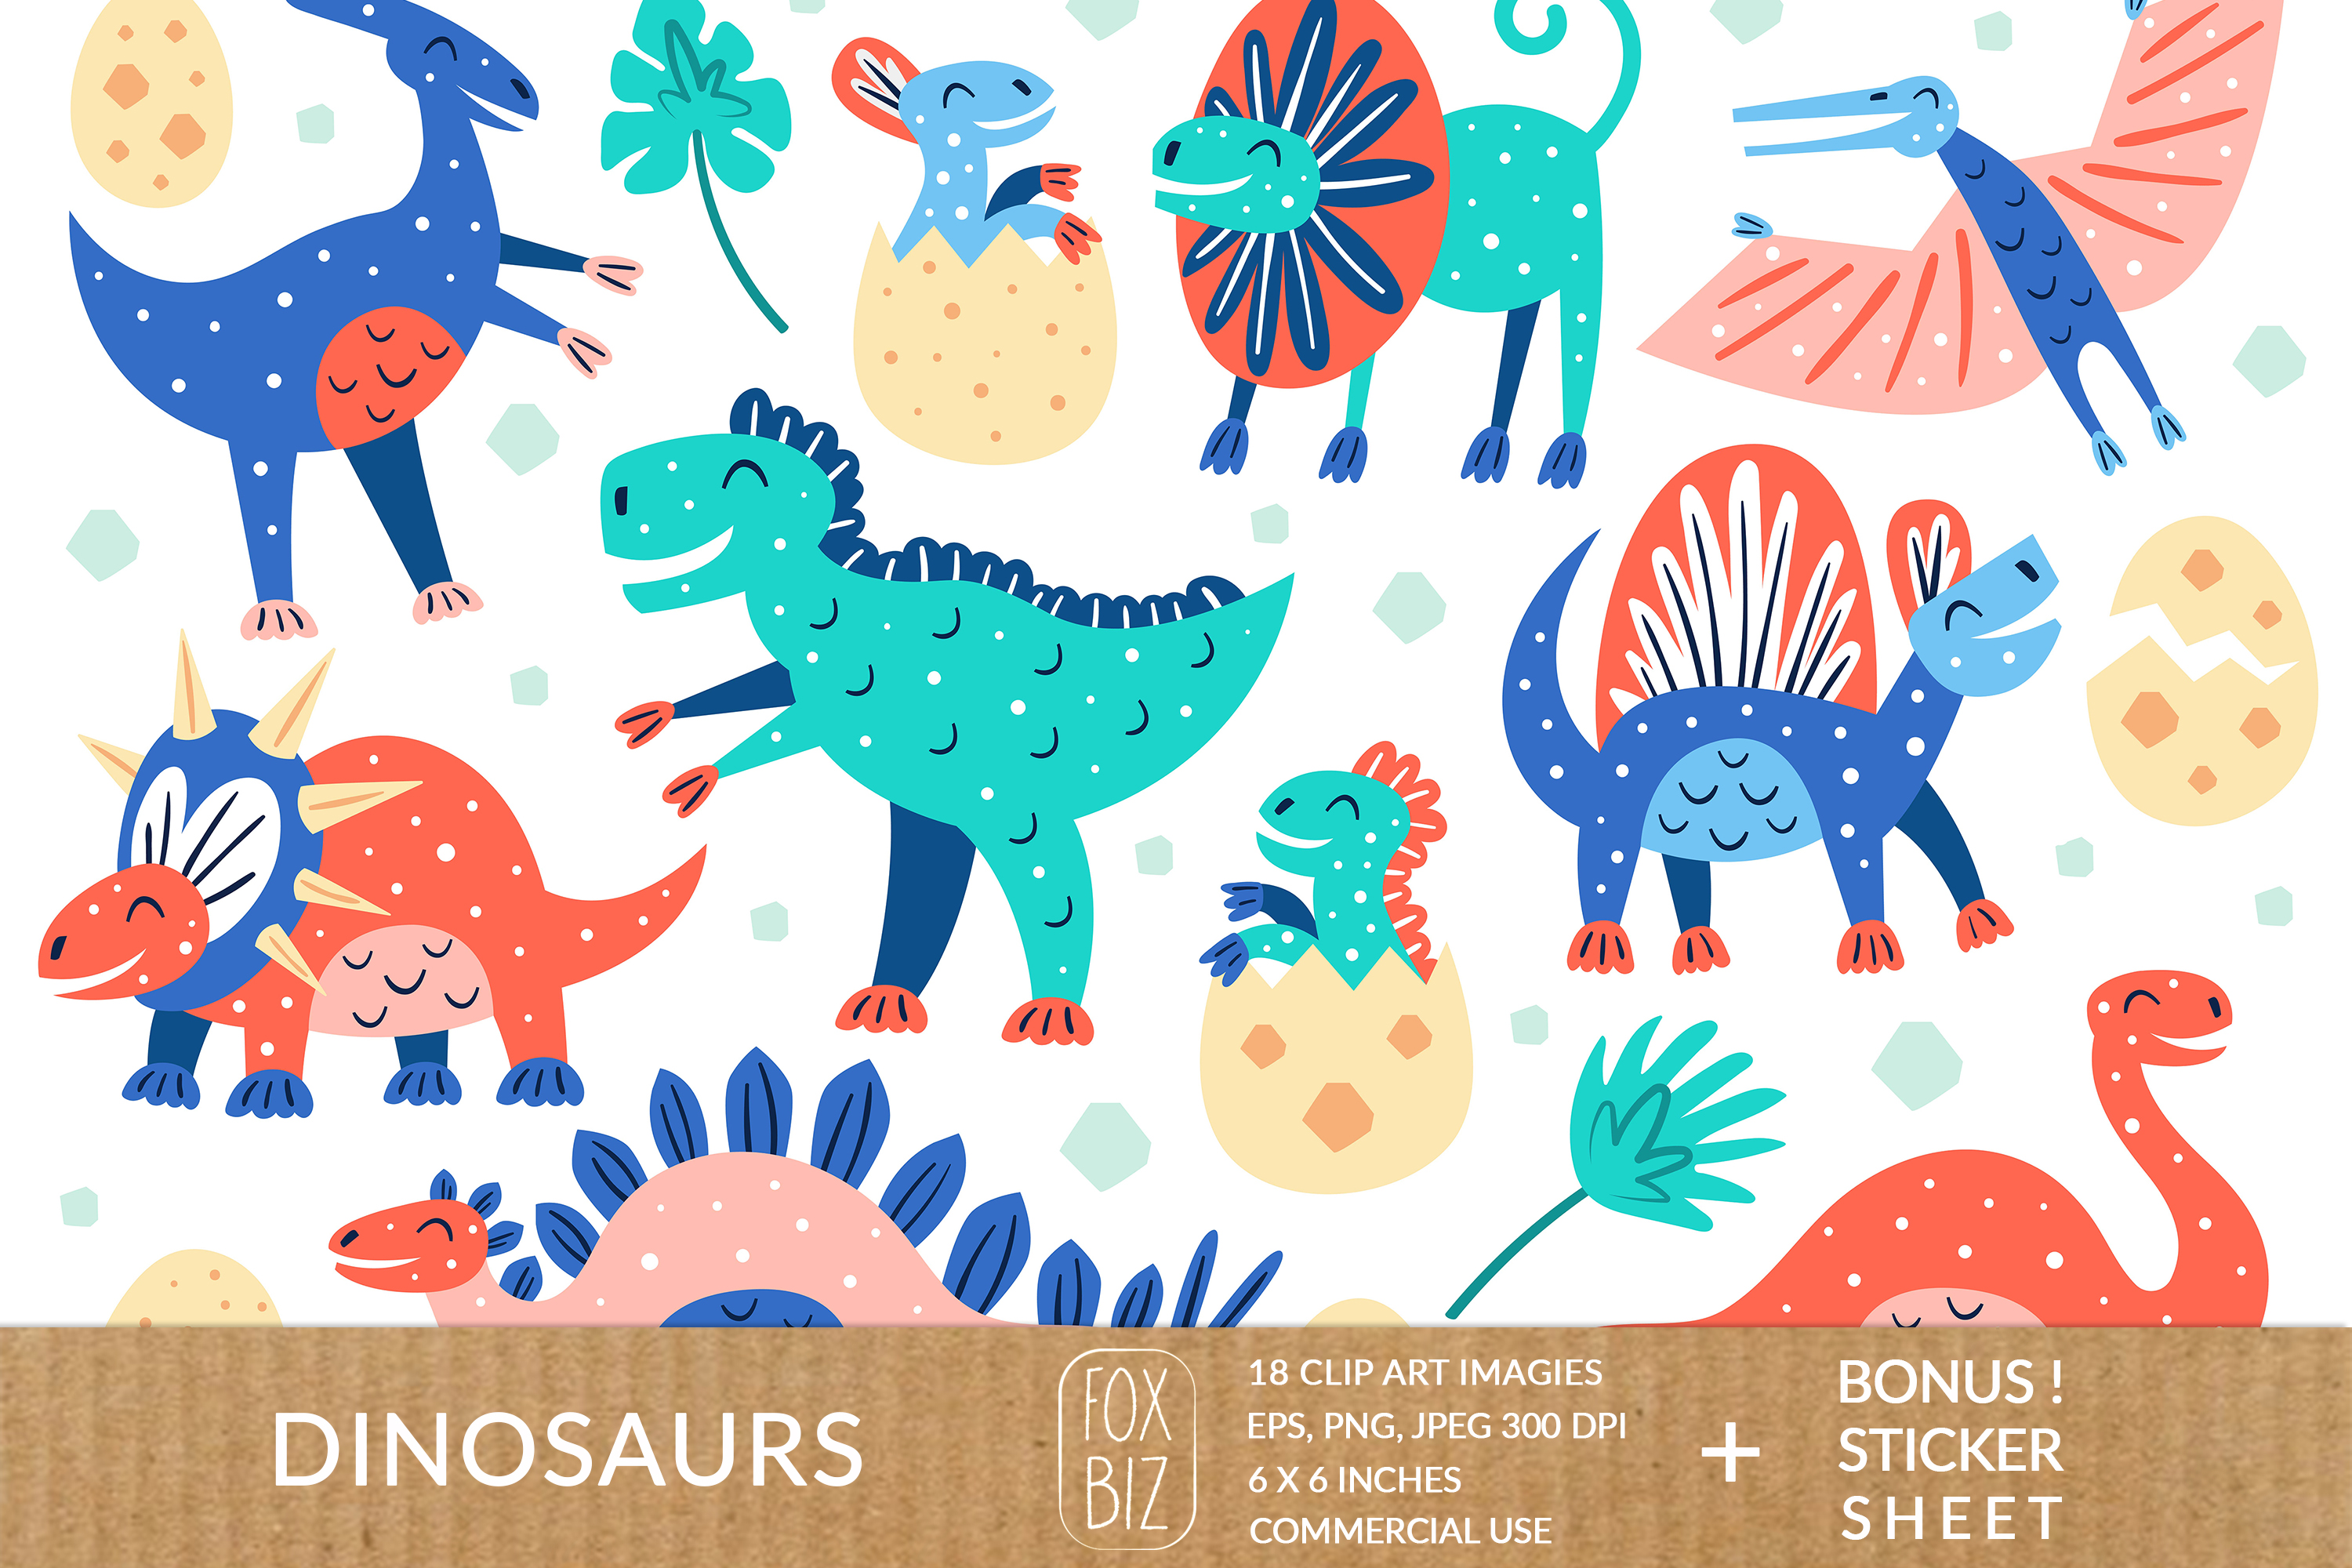 Download Free Dinosaur Clipart Graphic By Foxbiz Creative Fabrica for Cricut Explore, Silhouette and other cutting machines.